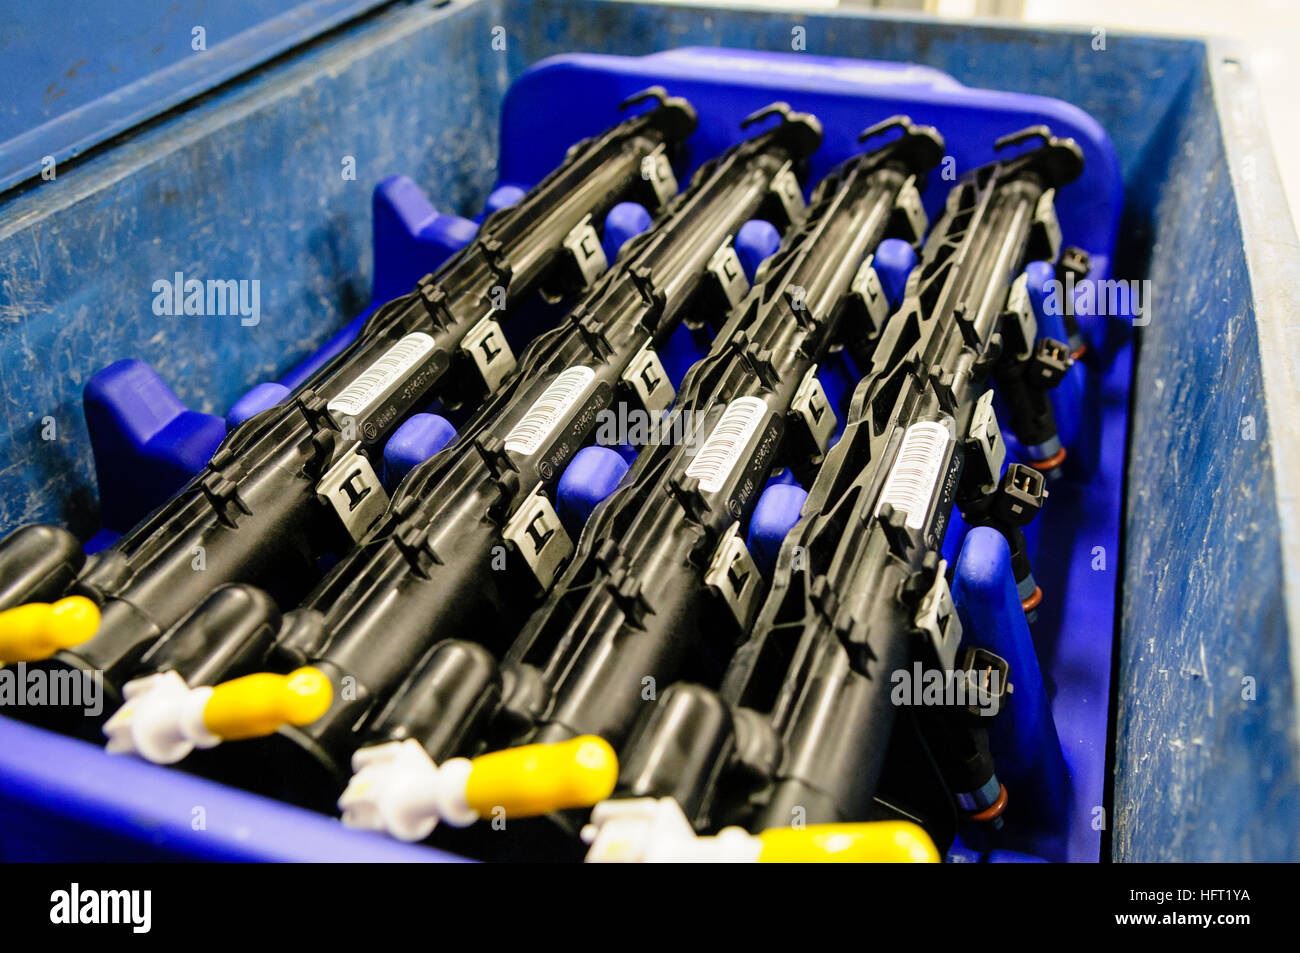 Ignition system manifolds for Ford Zetec engines packaged prior to being fitted at a production line. - Stock Image